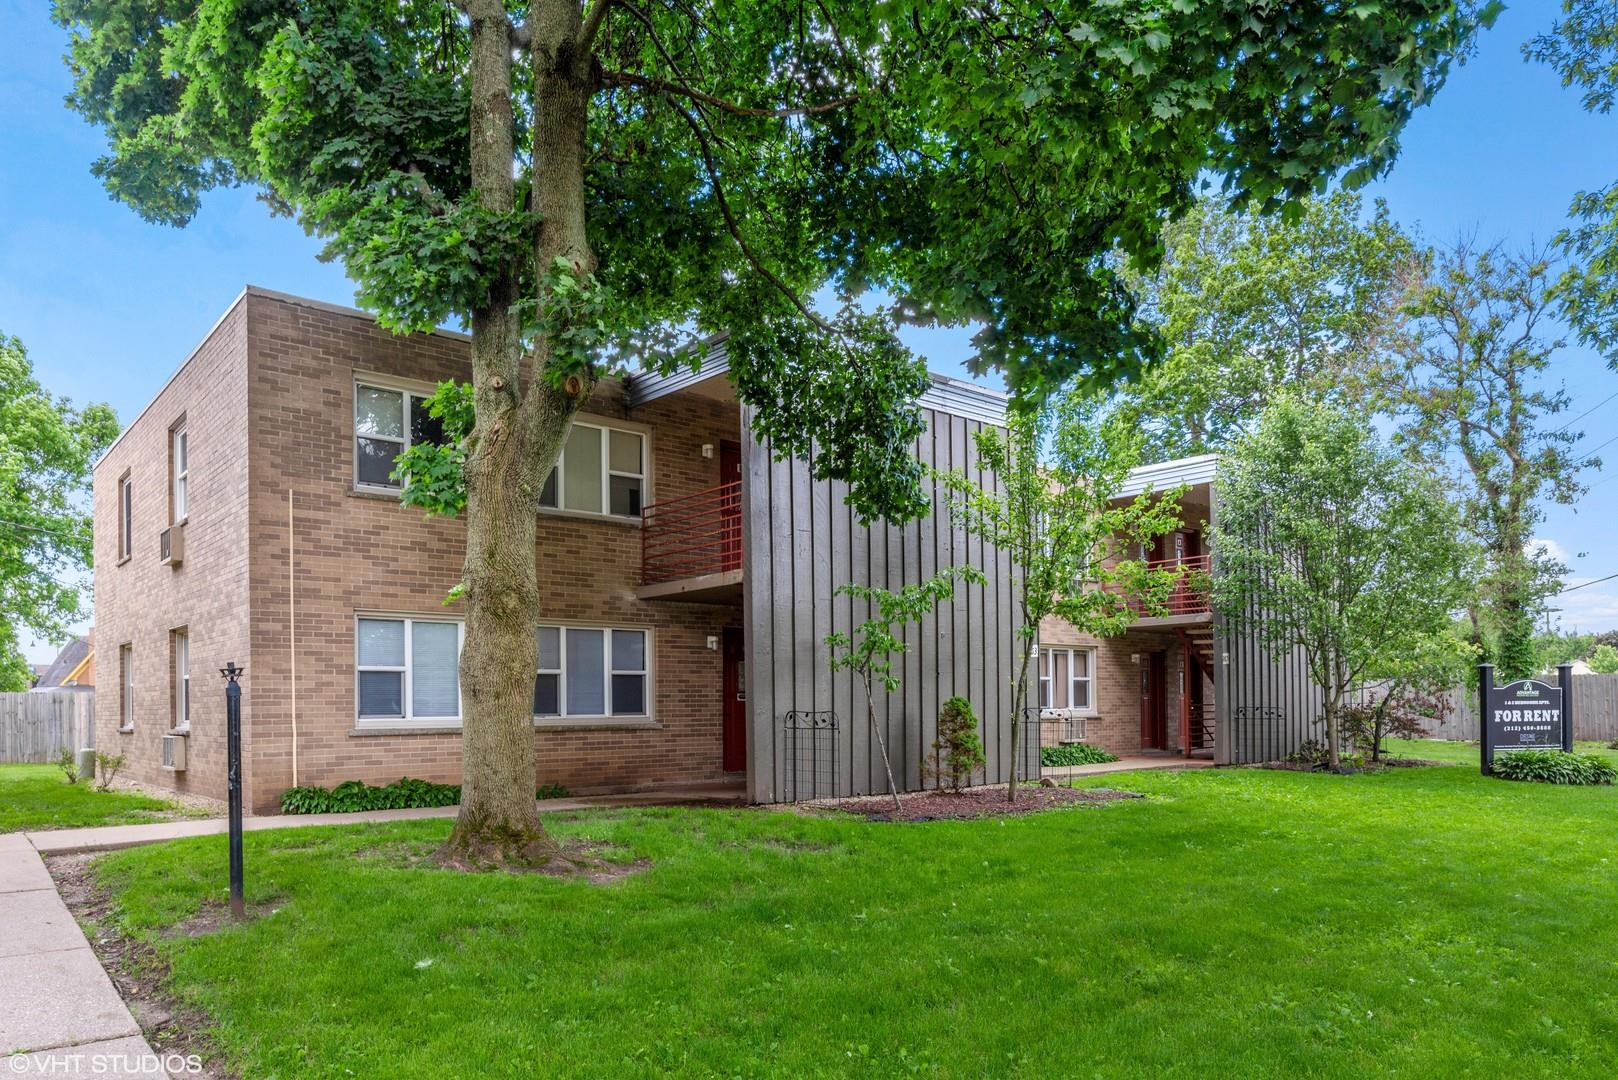 263 UTEG Street #1, Crystal Lake, IL 60014 - #: 10621987